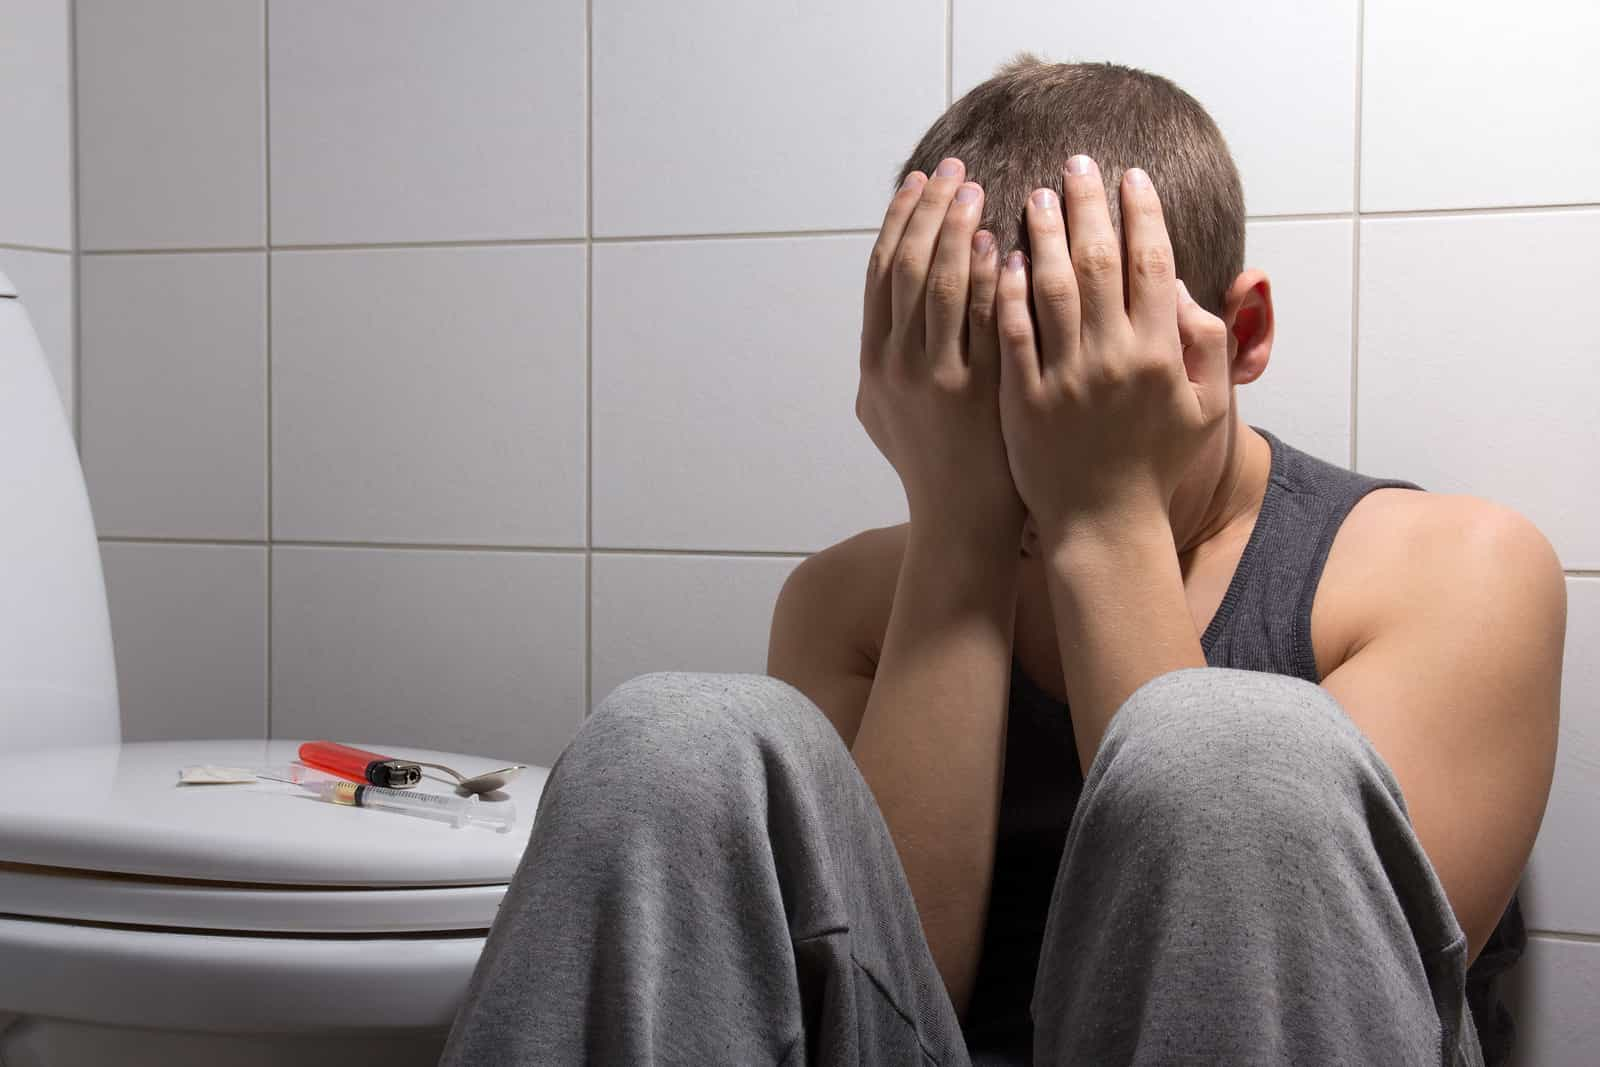 Stoned Man With Heroin Addiction Sitting In Bathroom